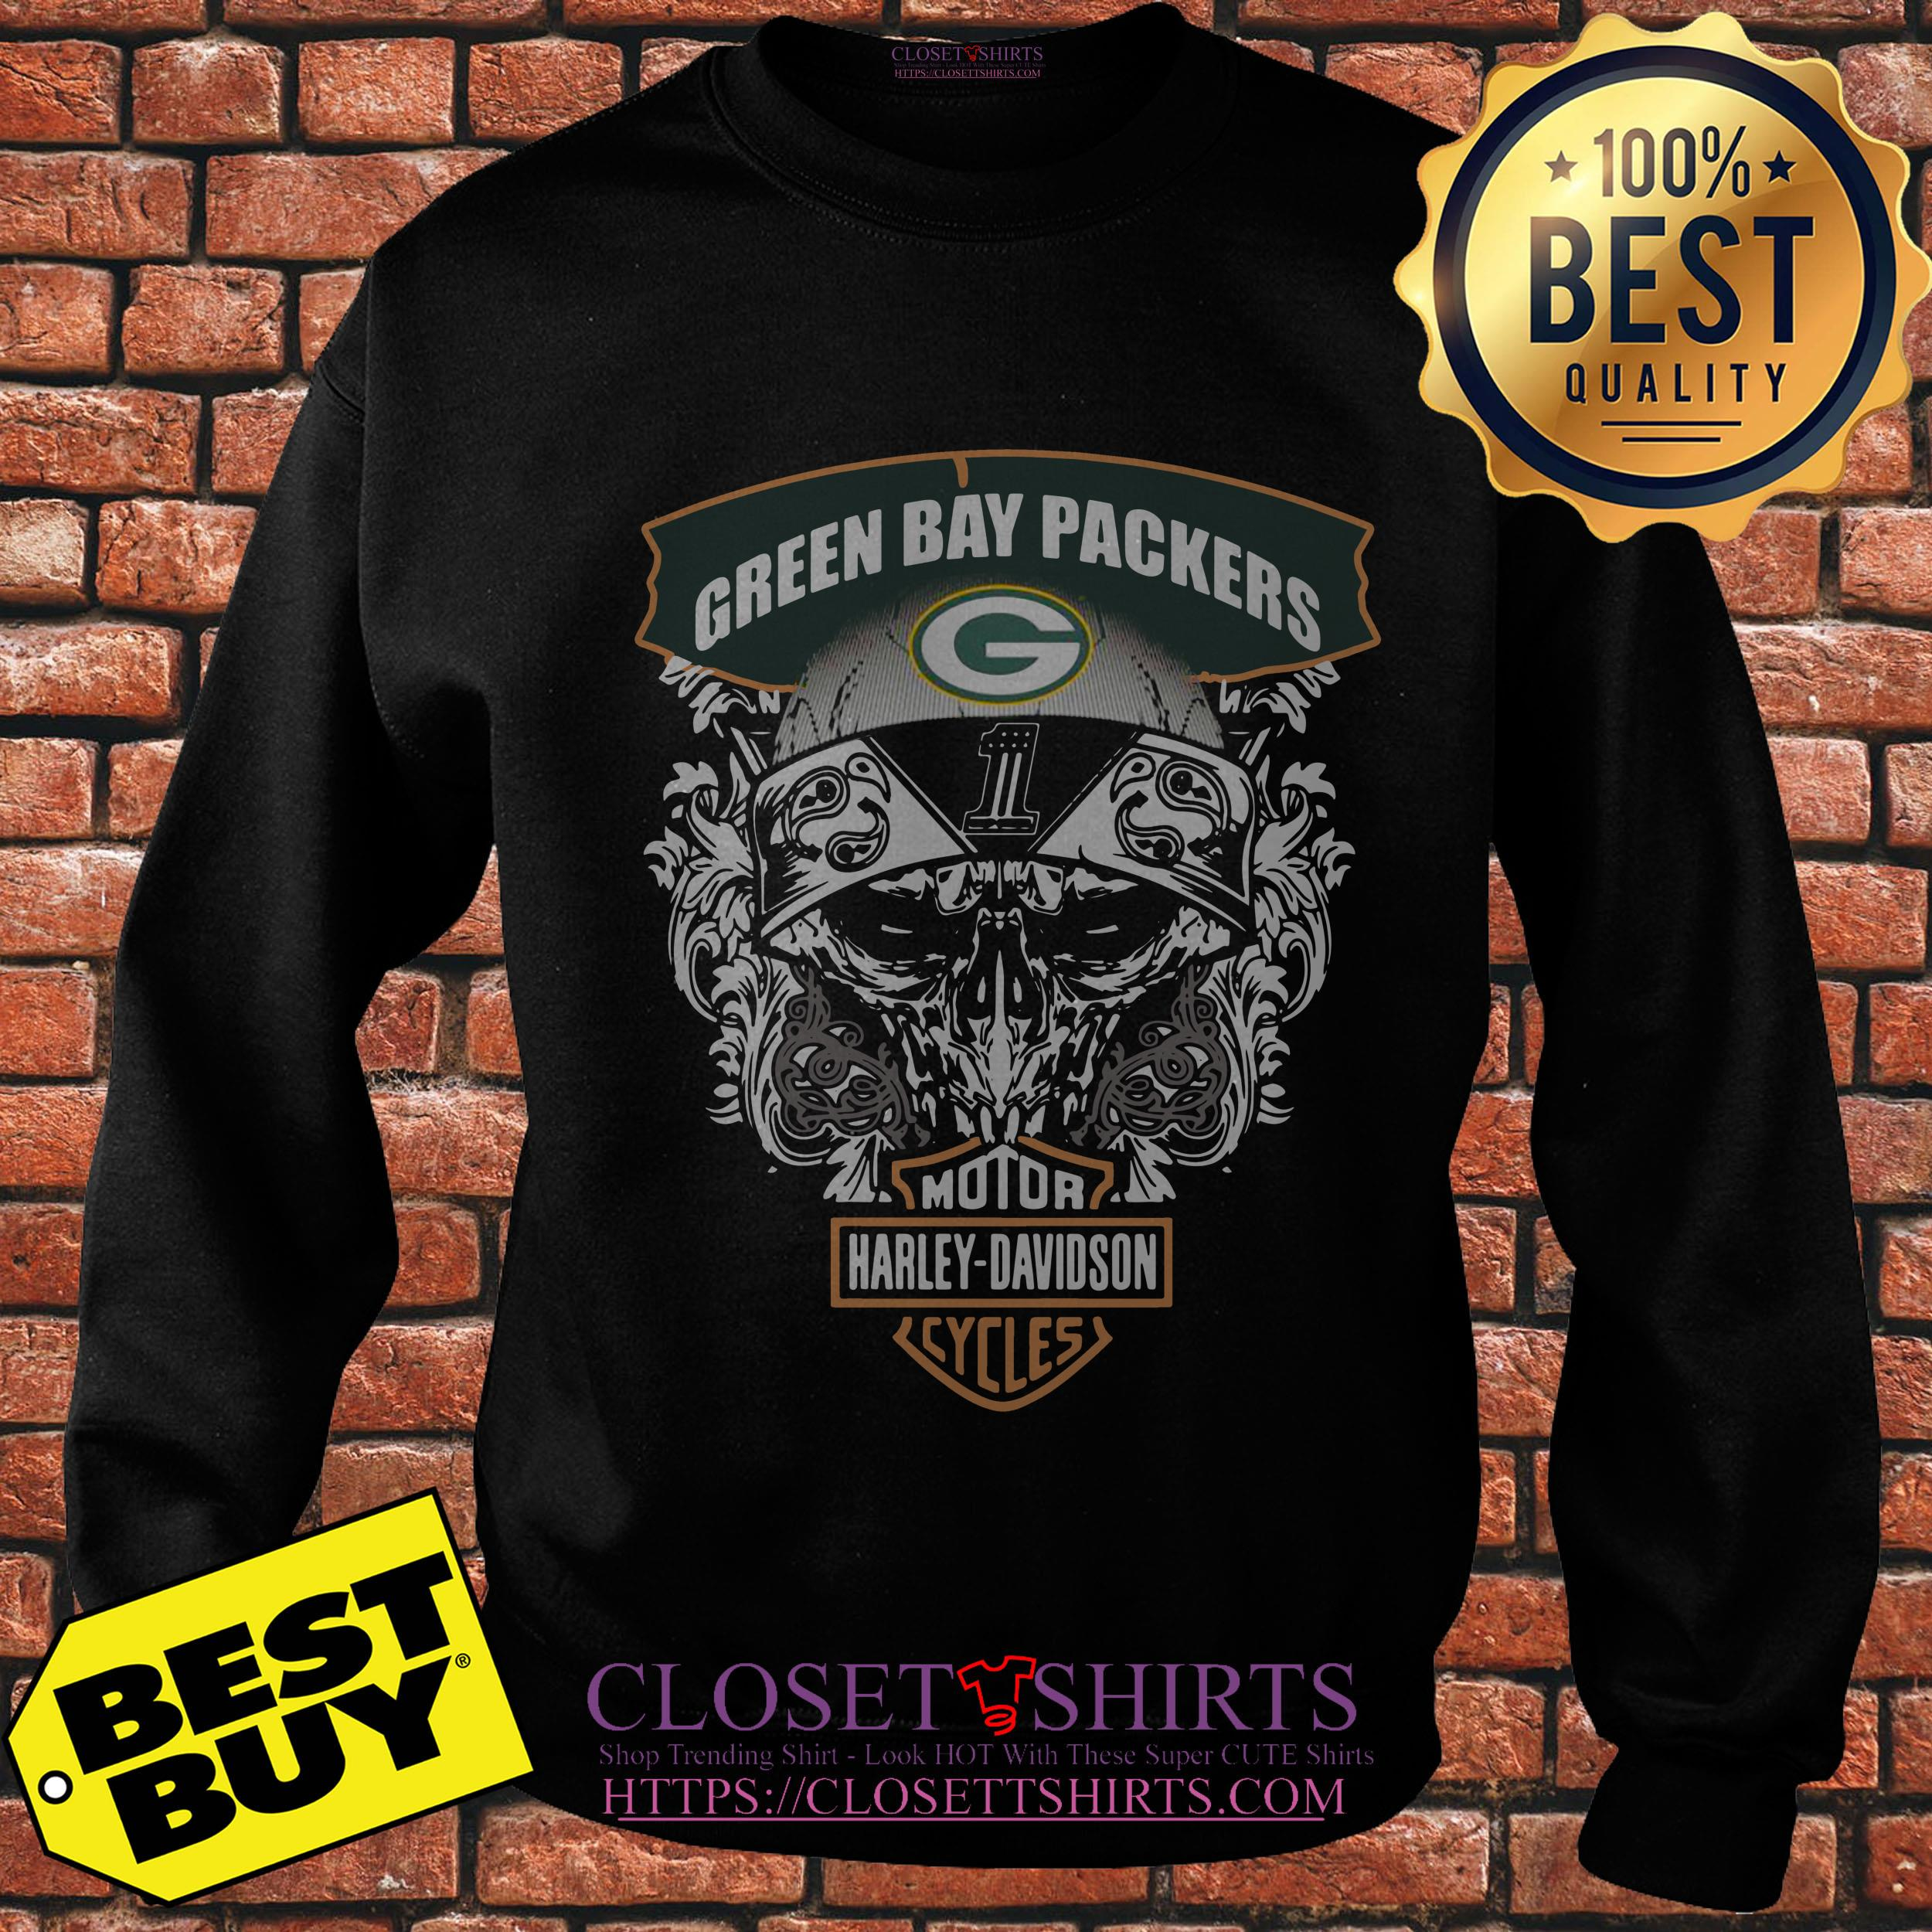 Green Bay Packers Harley Davidson Cycles sweatshirt